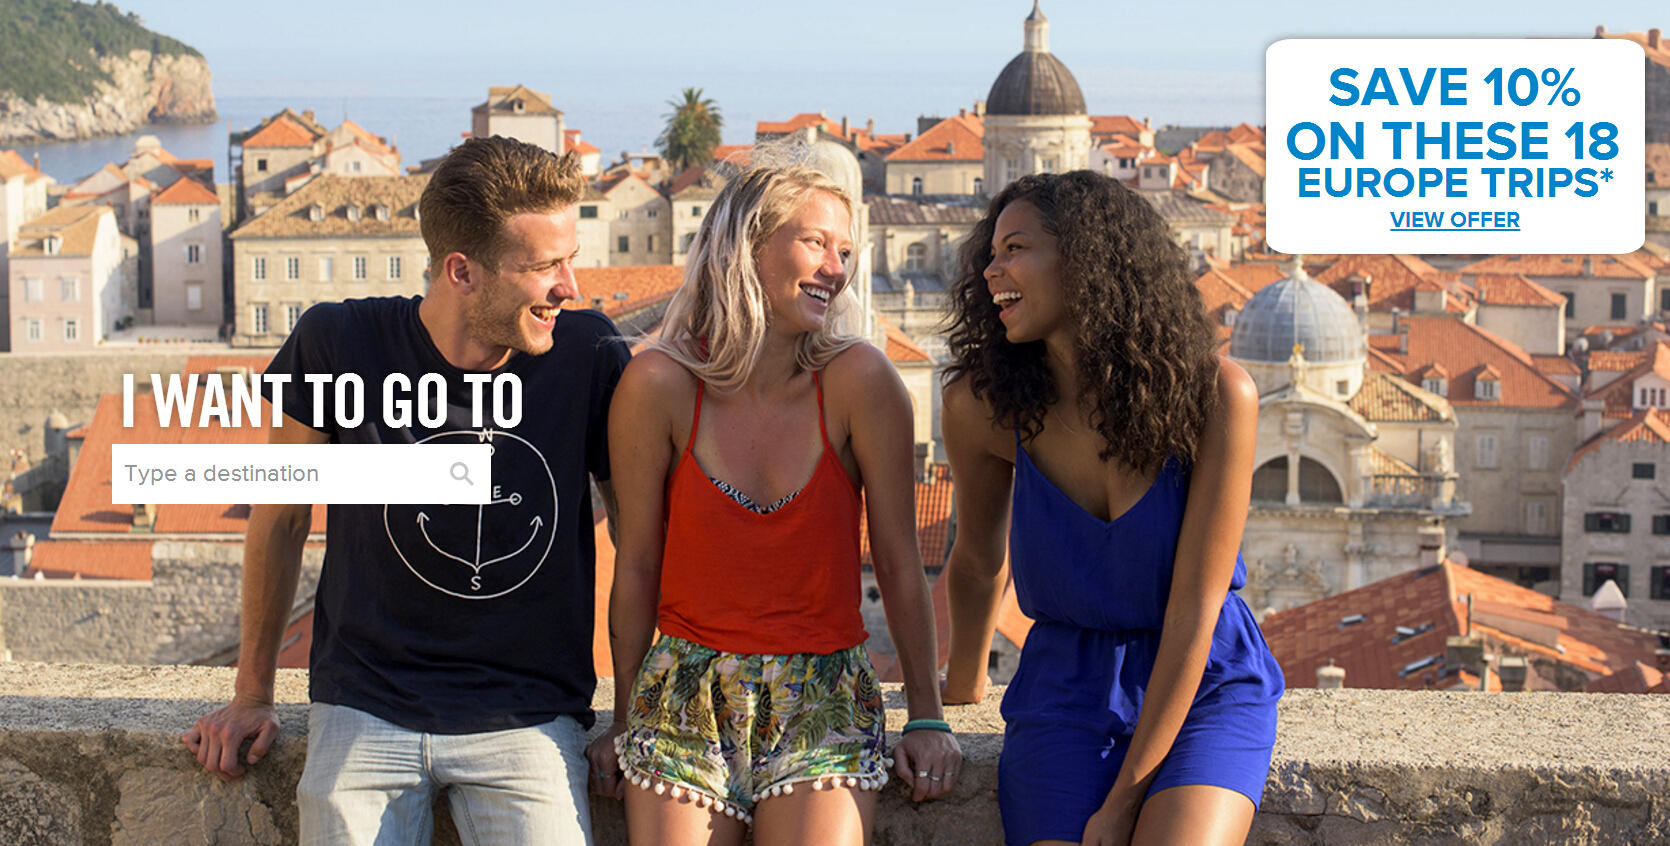 Save 10% on these 18 Europe TripsTour Deals